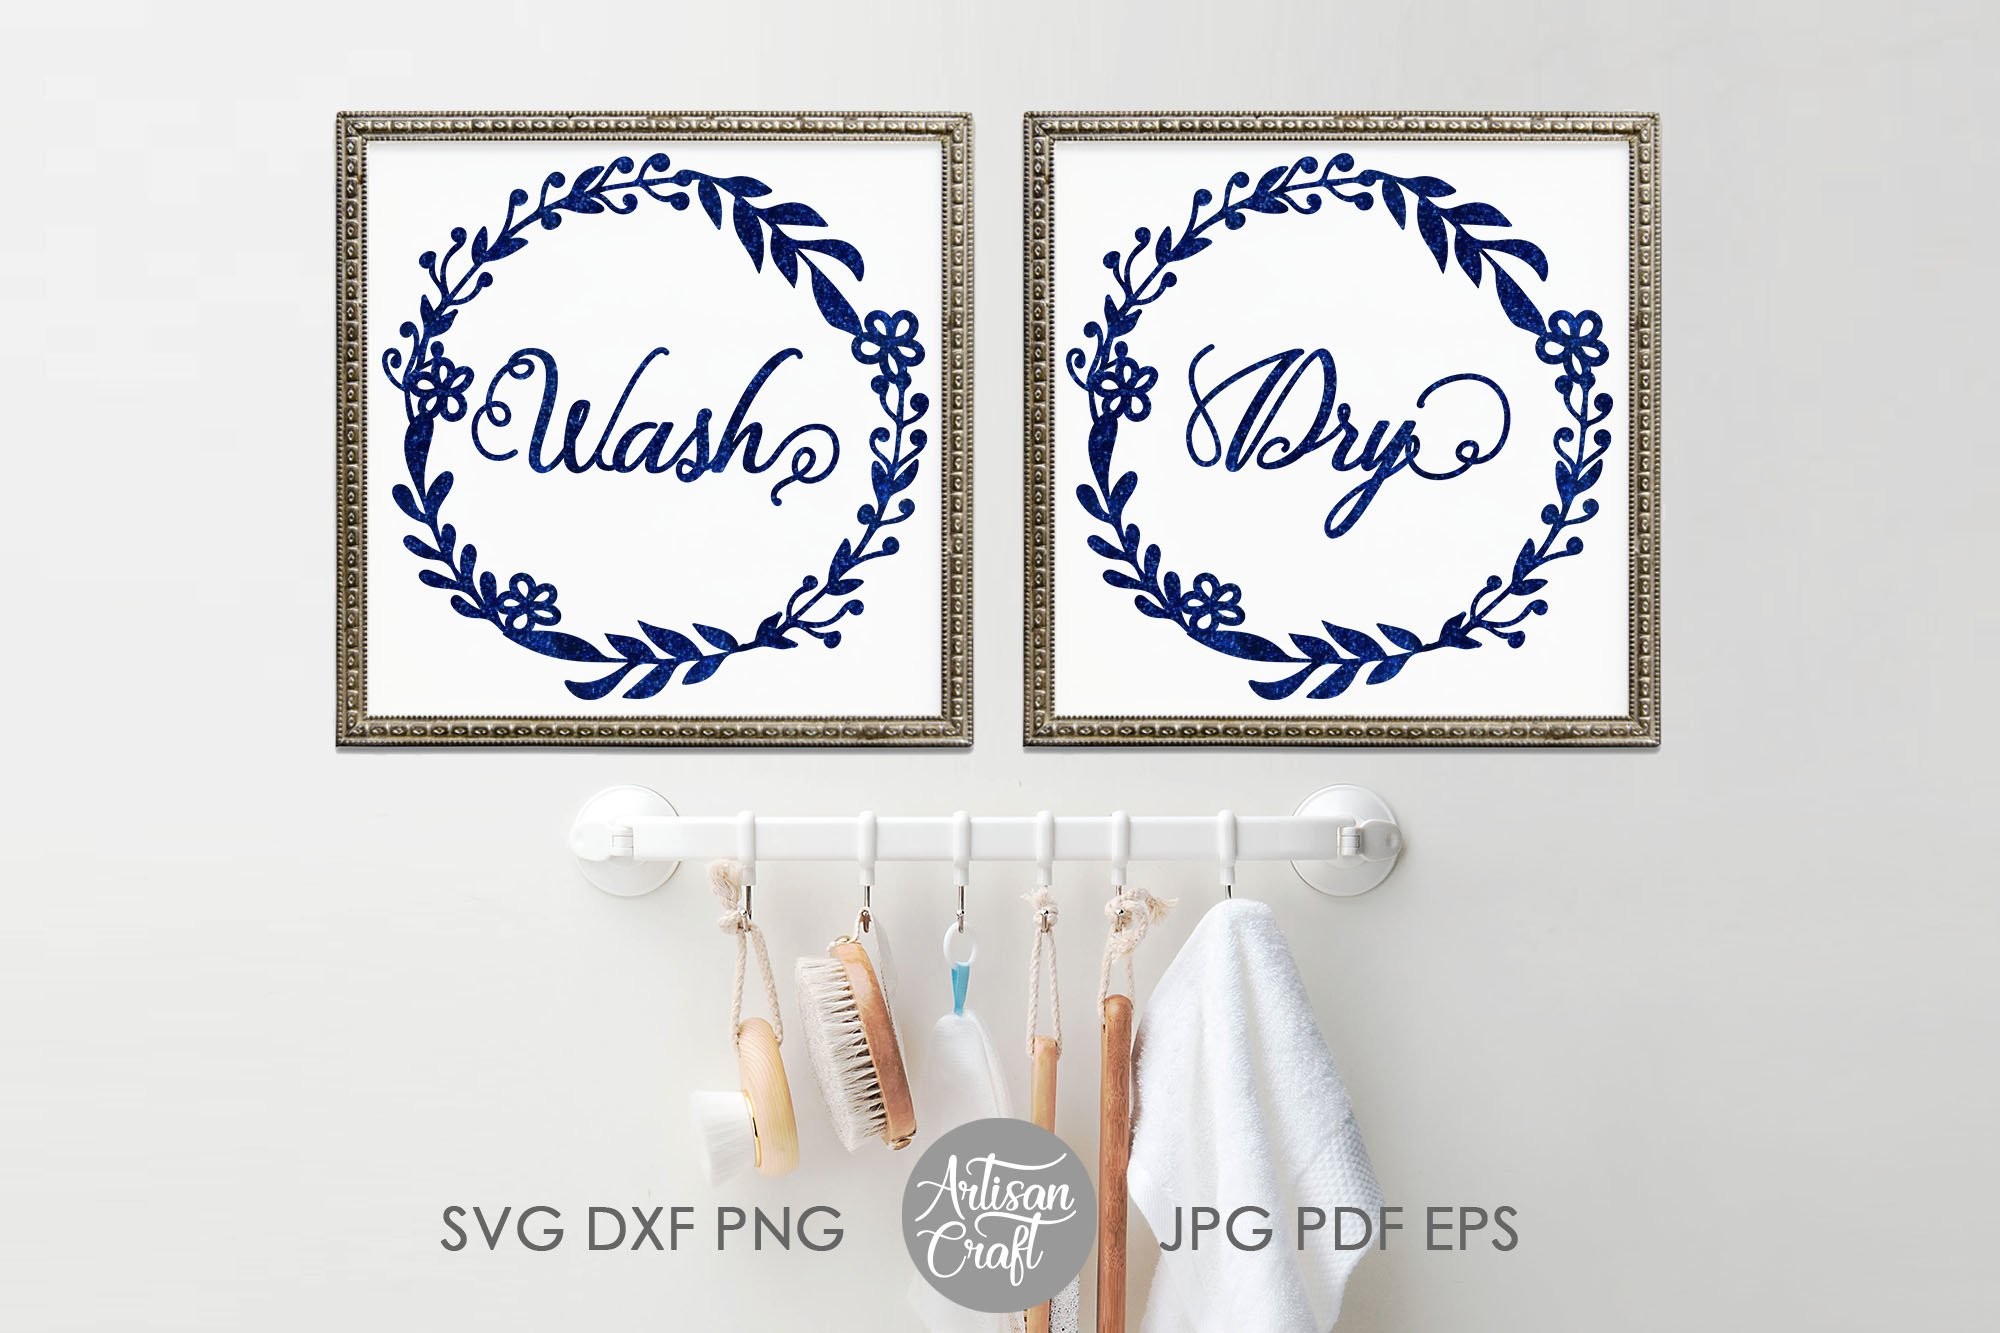 Wash dry svg, washer dryer decals, floral wreath png example image 3